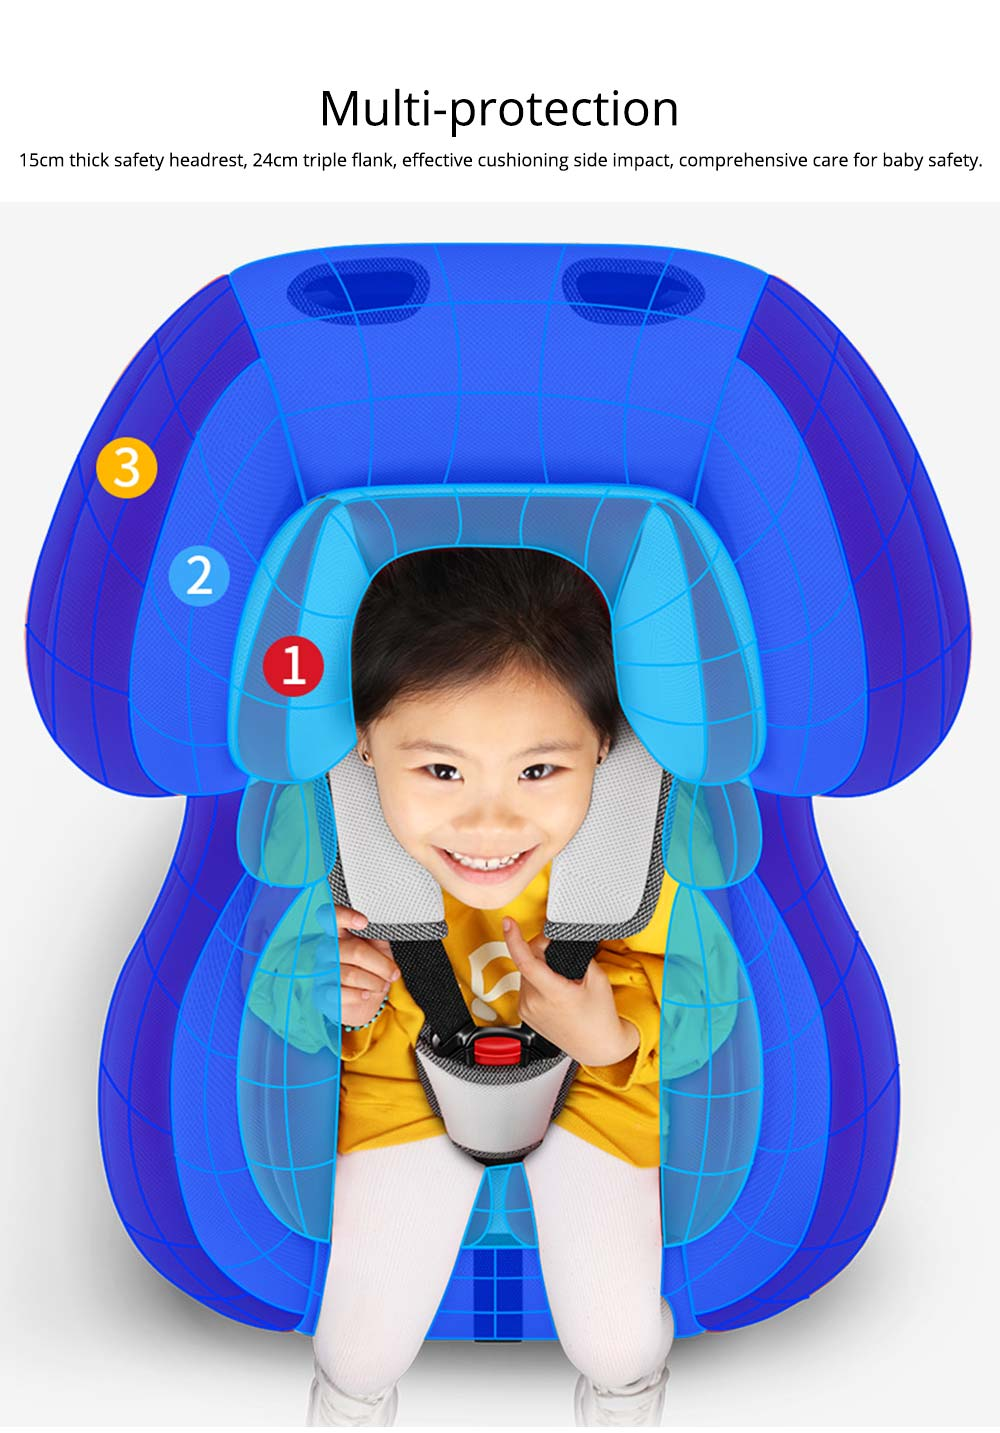 Children's Booster Seat Large Auto Car Seat Protectors for Child, Baby Safety Seat Thick Padding Car Seat 6